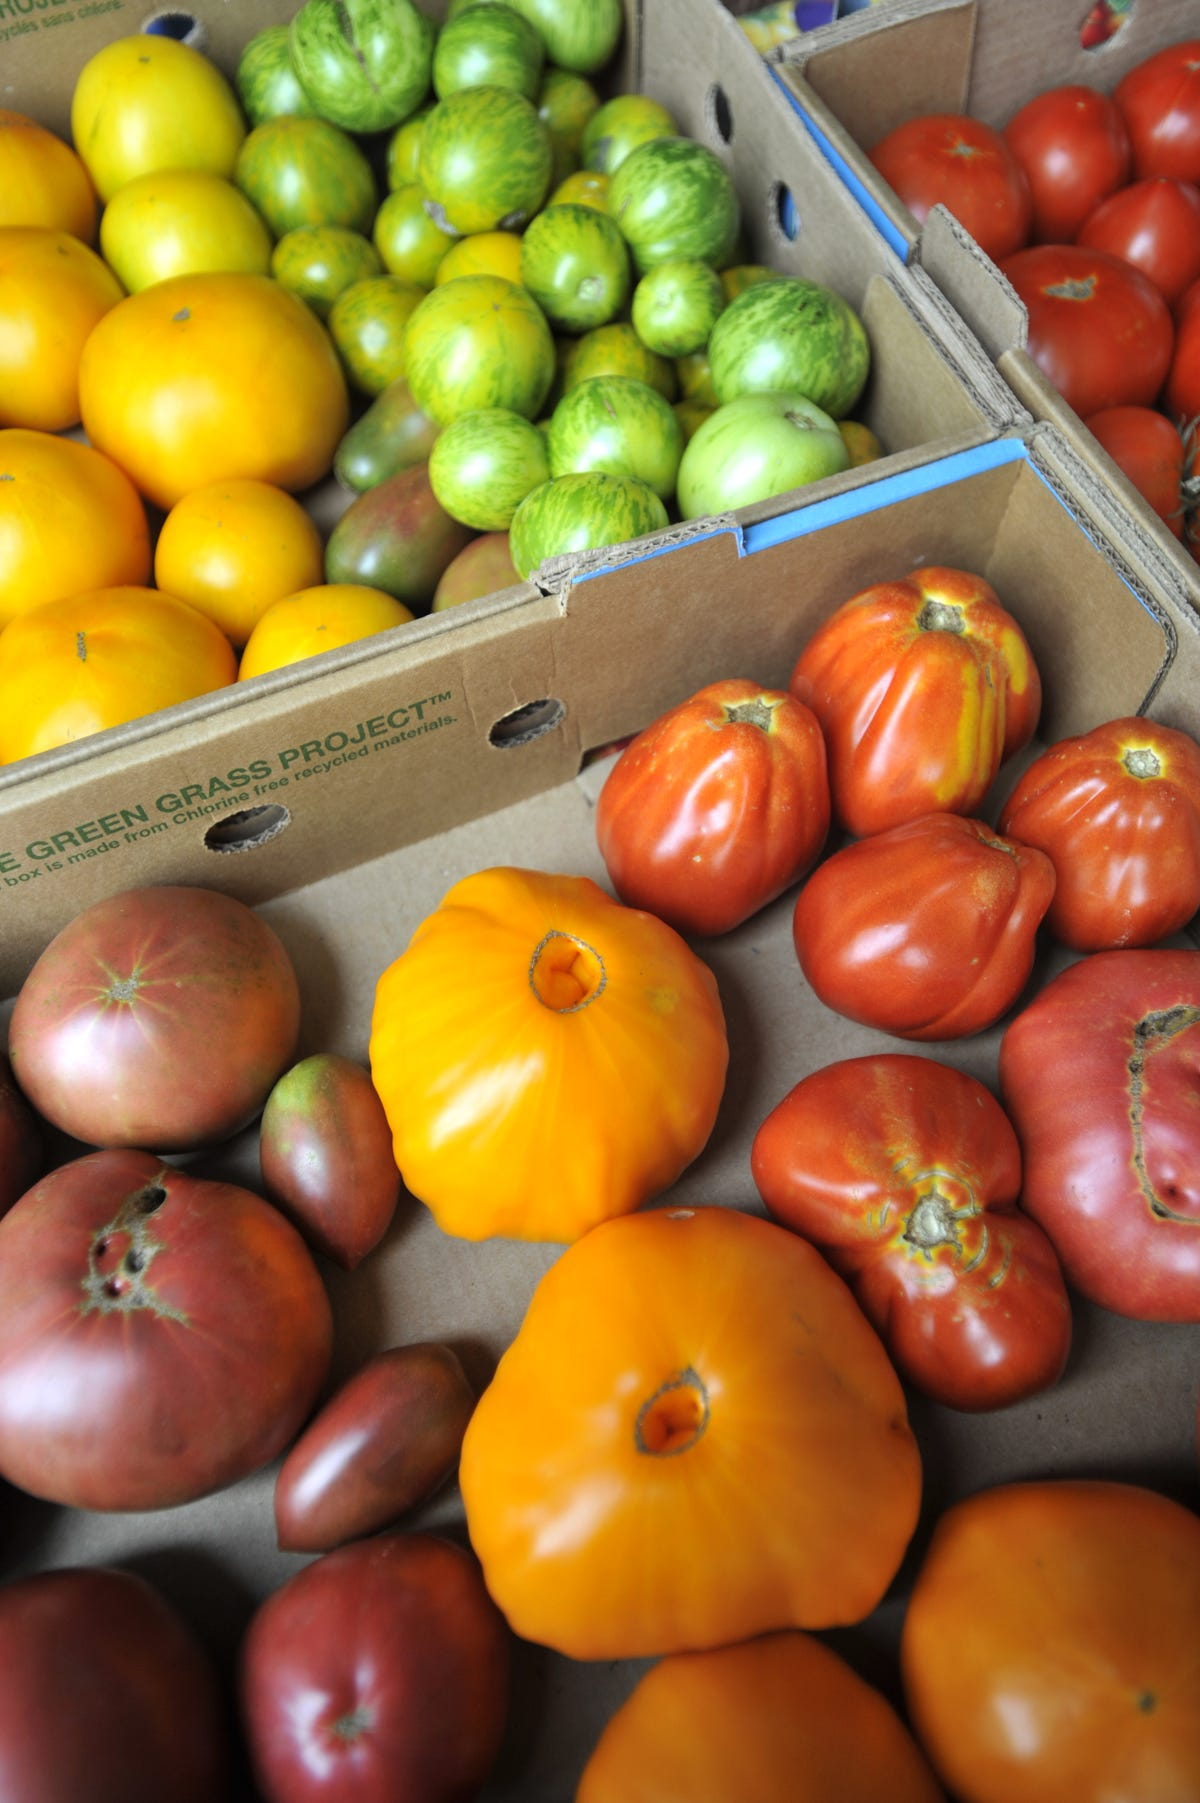 Saving food from waste by the truckload